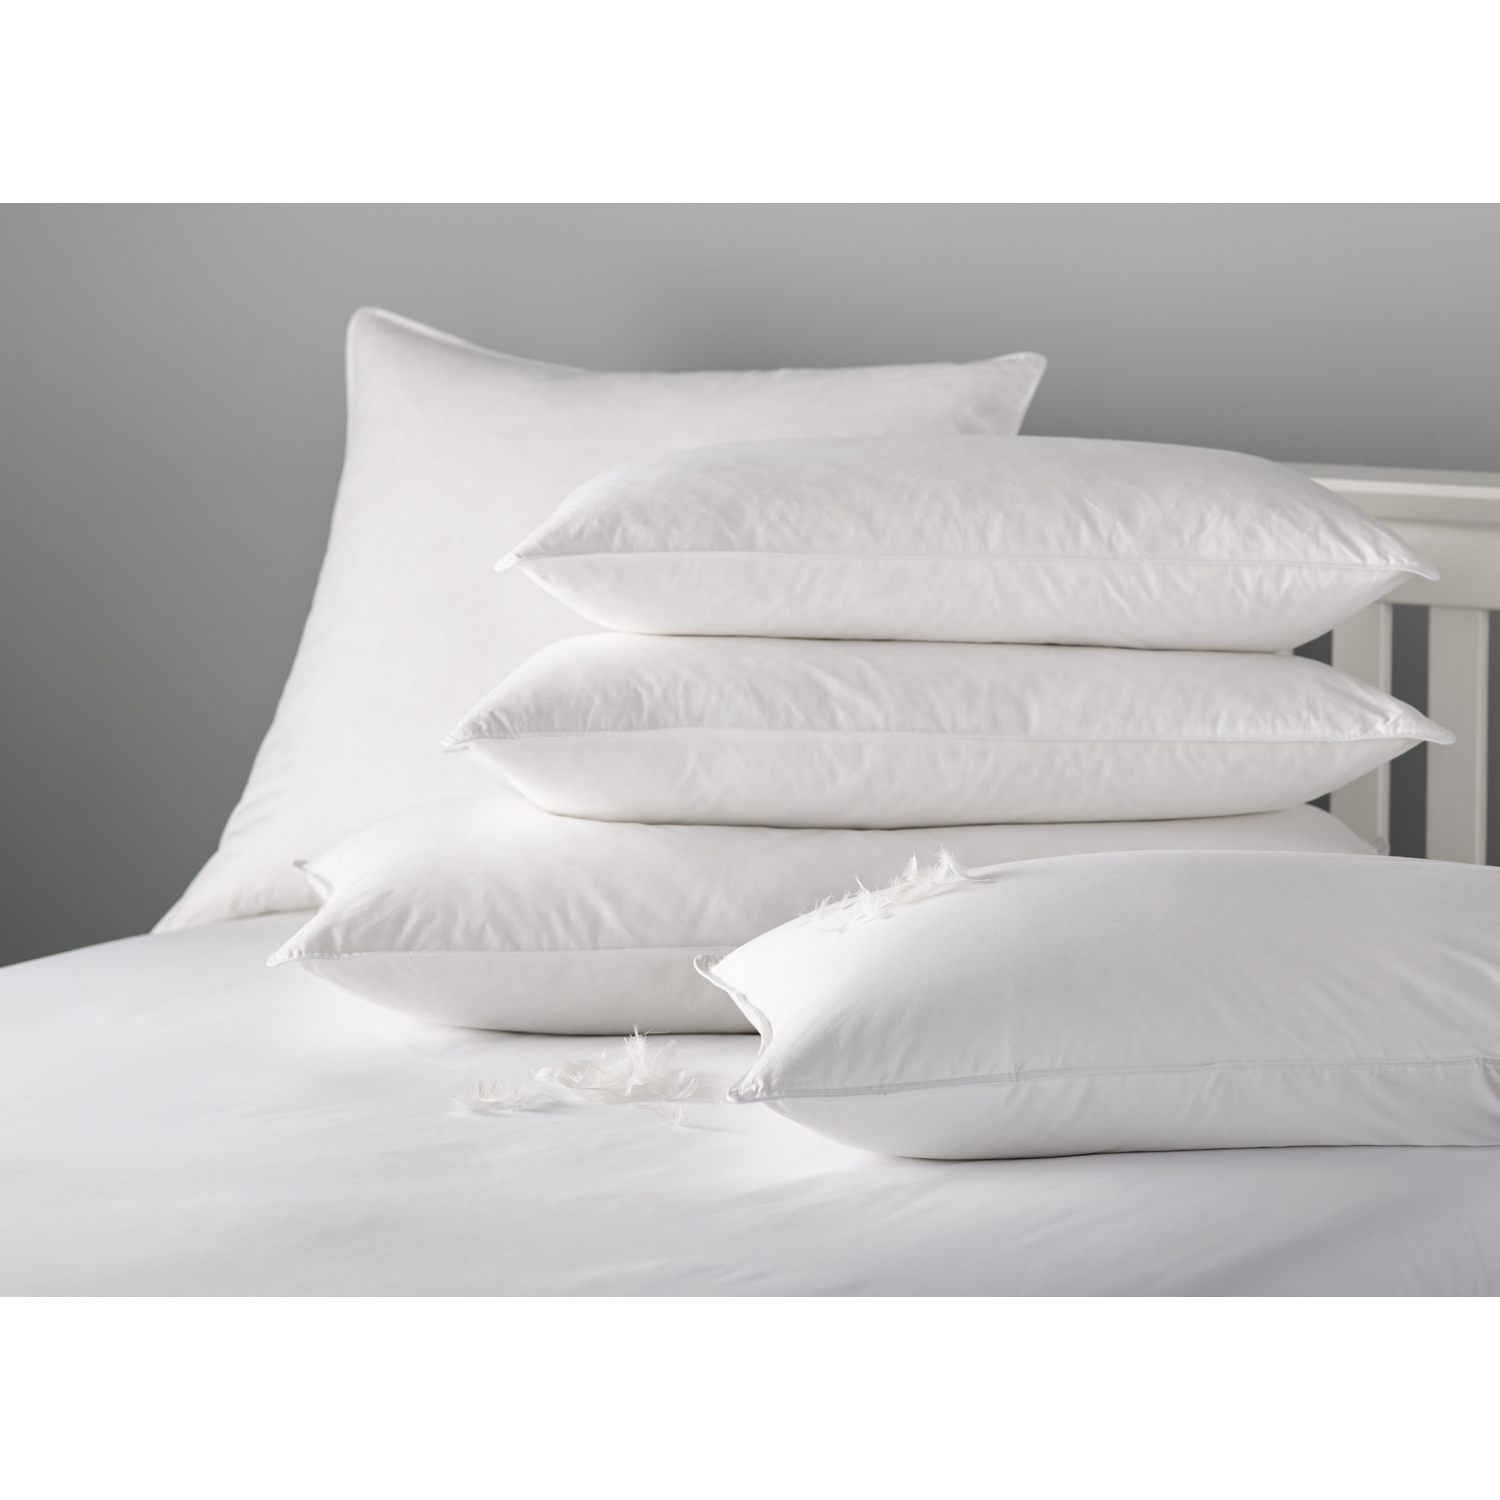 Image of Casa Milled Duck Feather Pillow